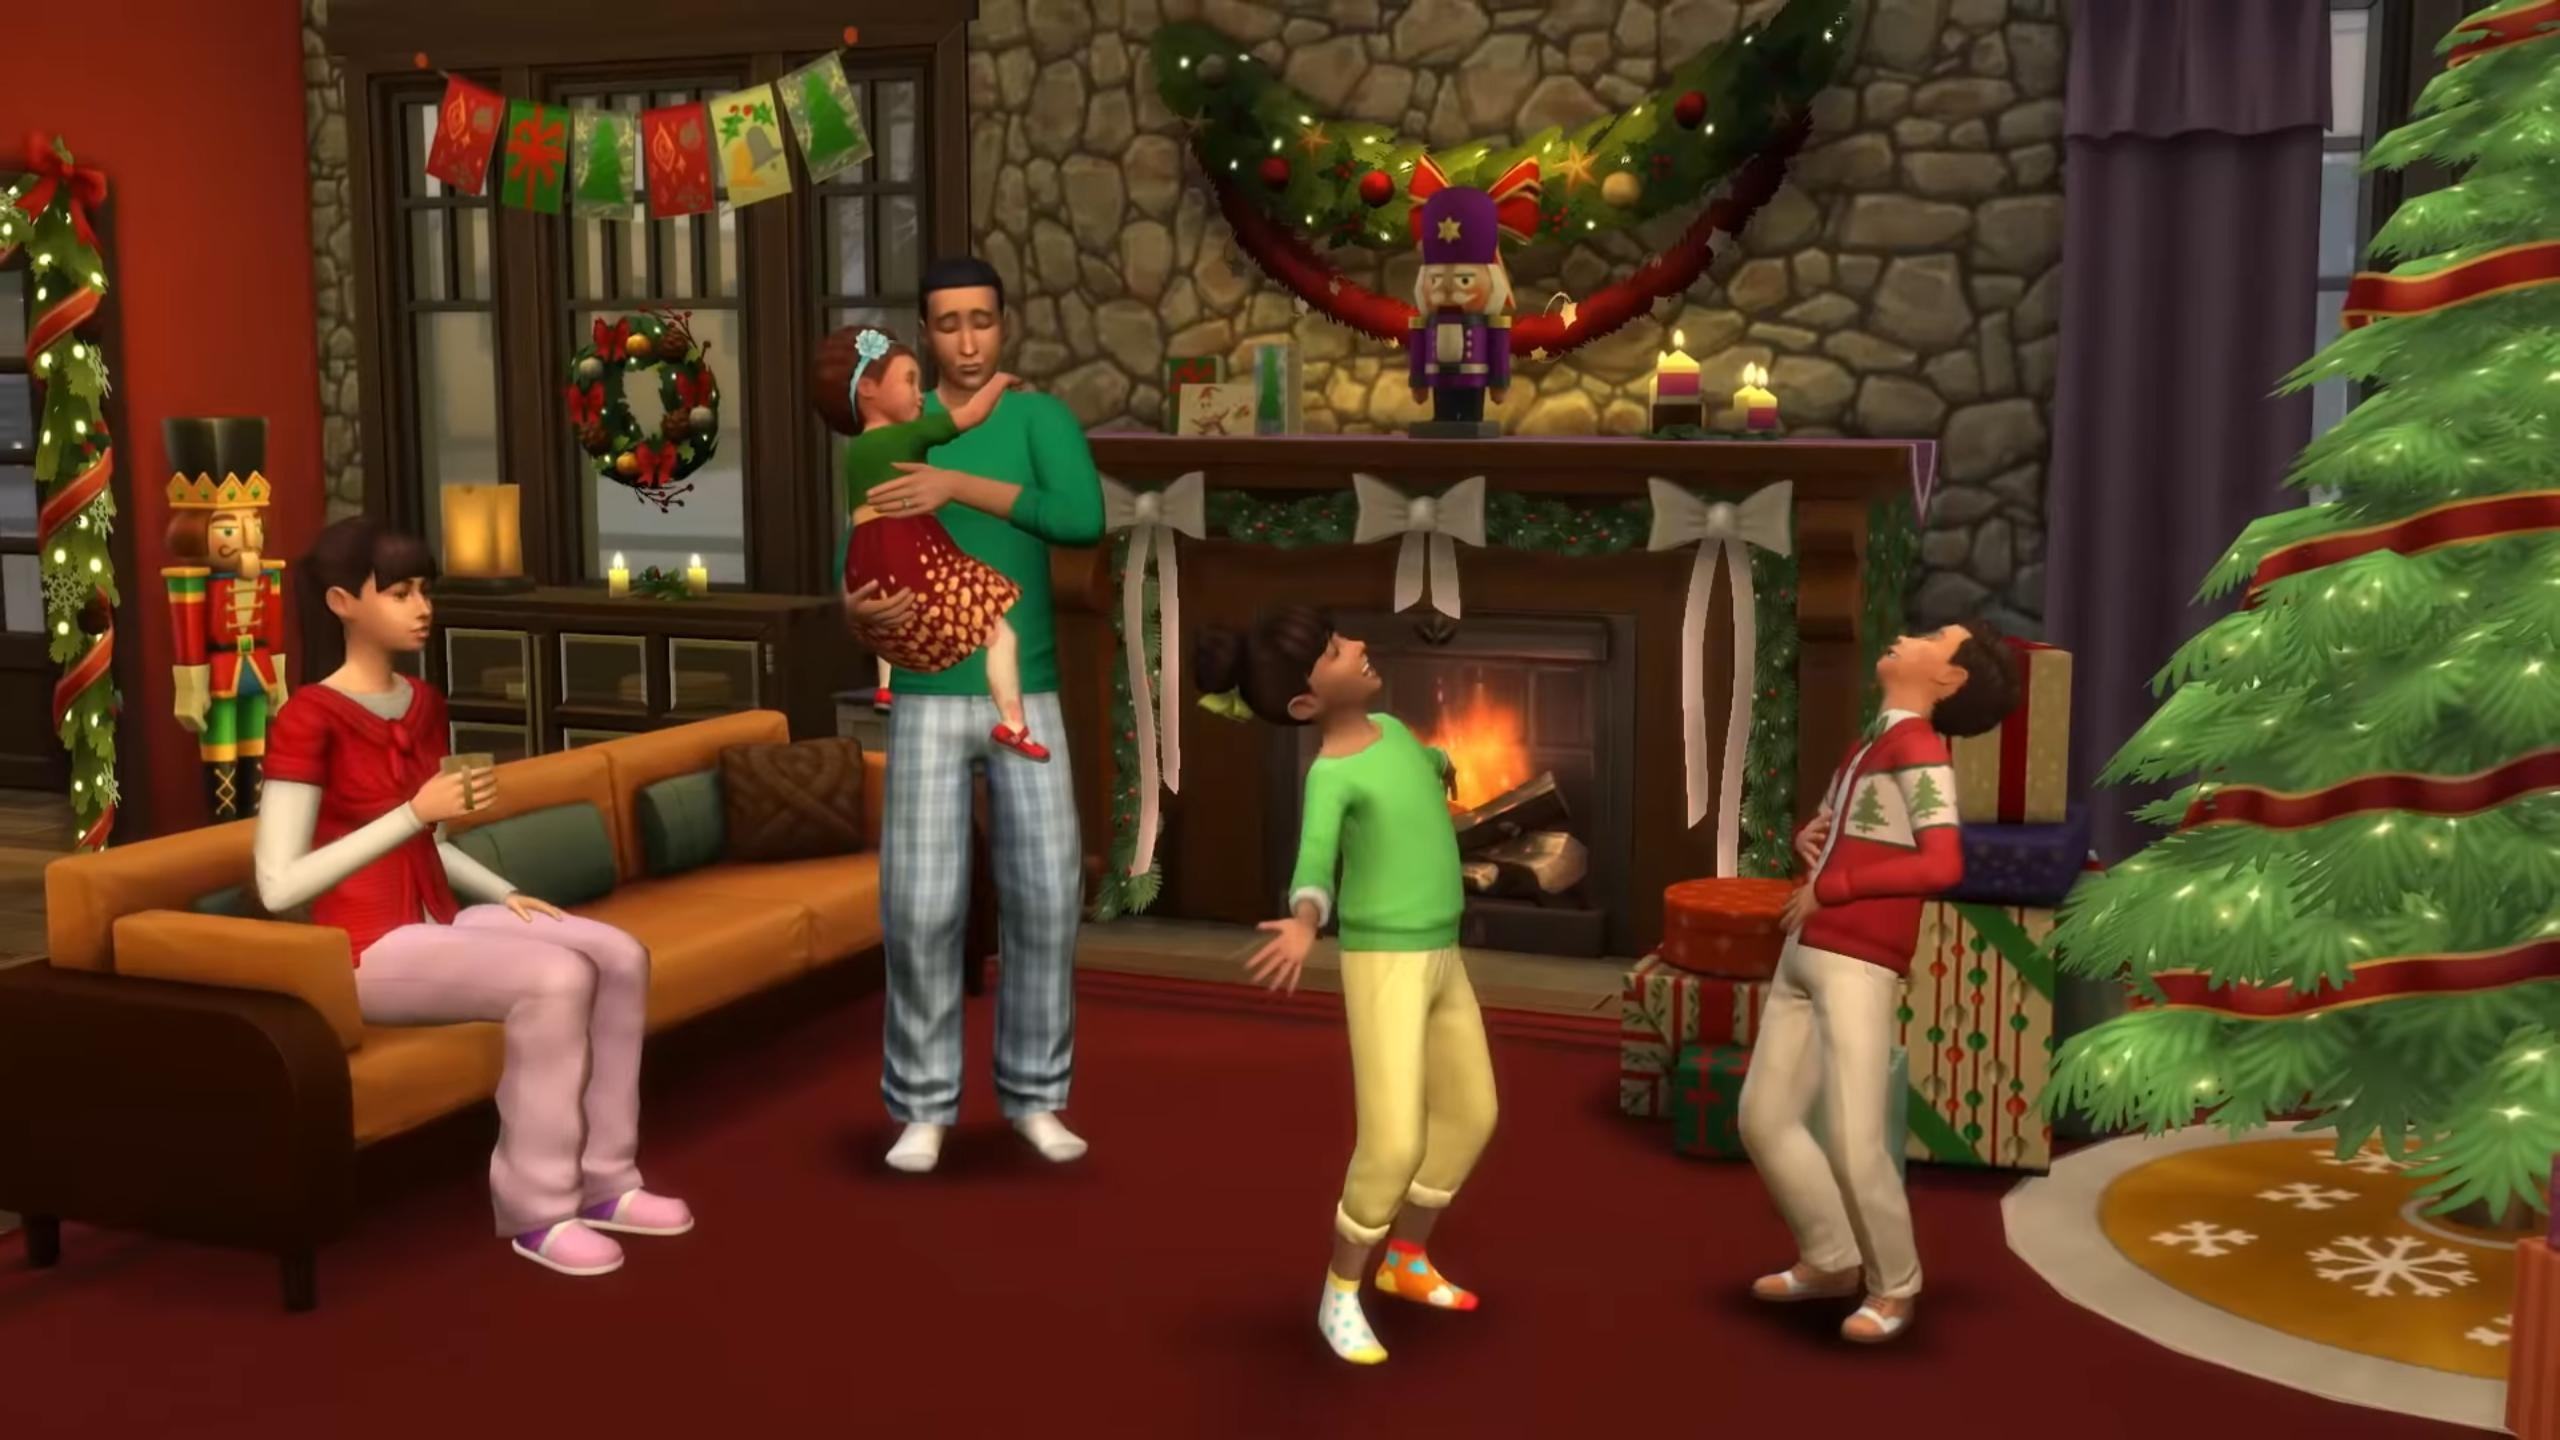 The Sims 4 Seasons Expansion Pack (Guide and Features)